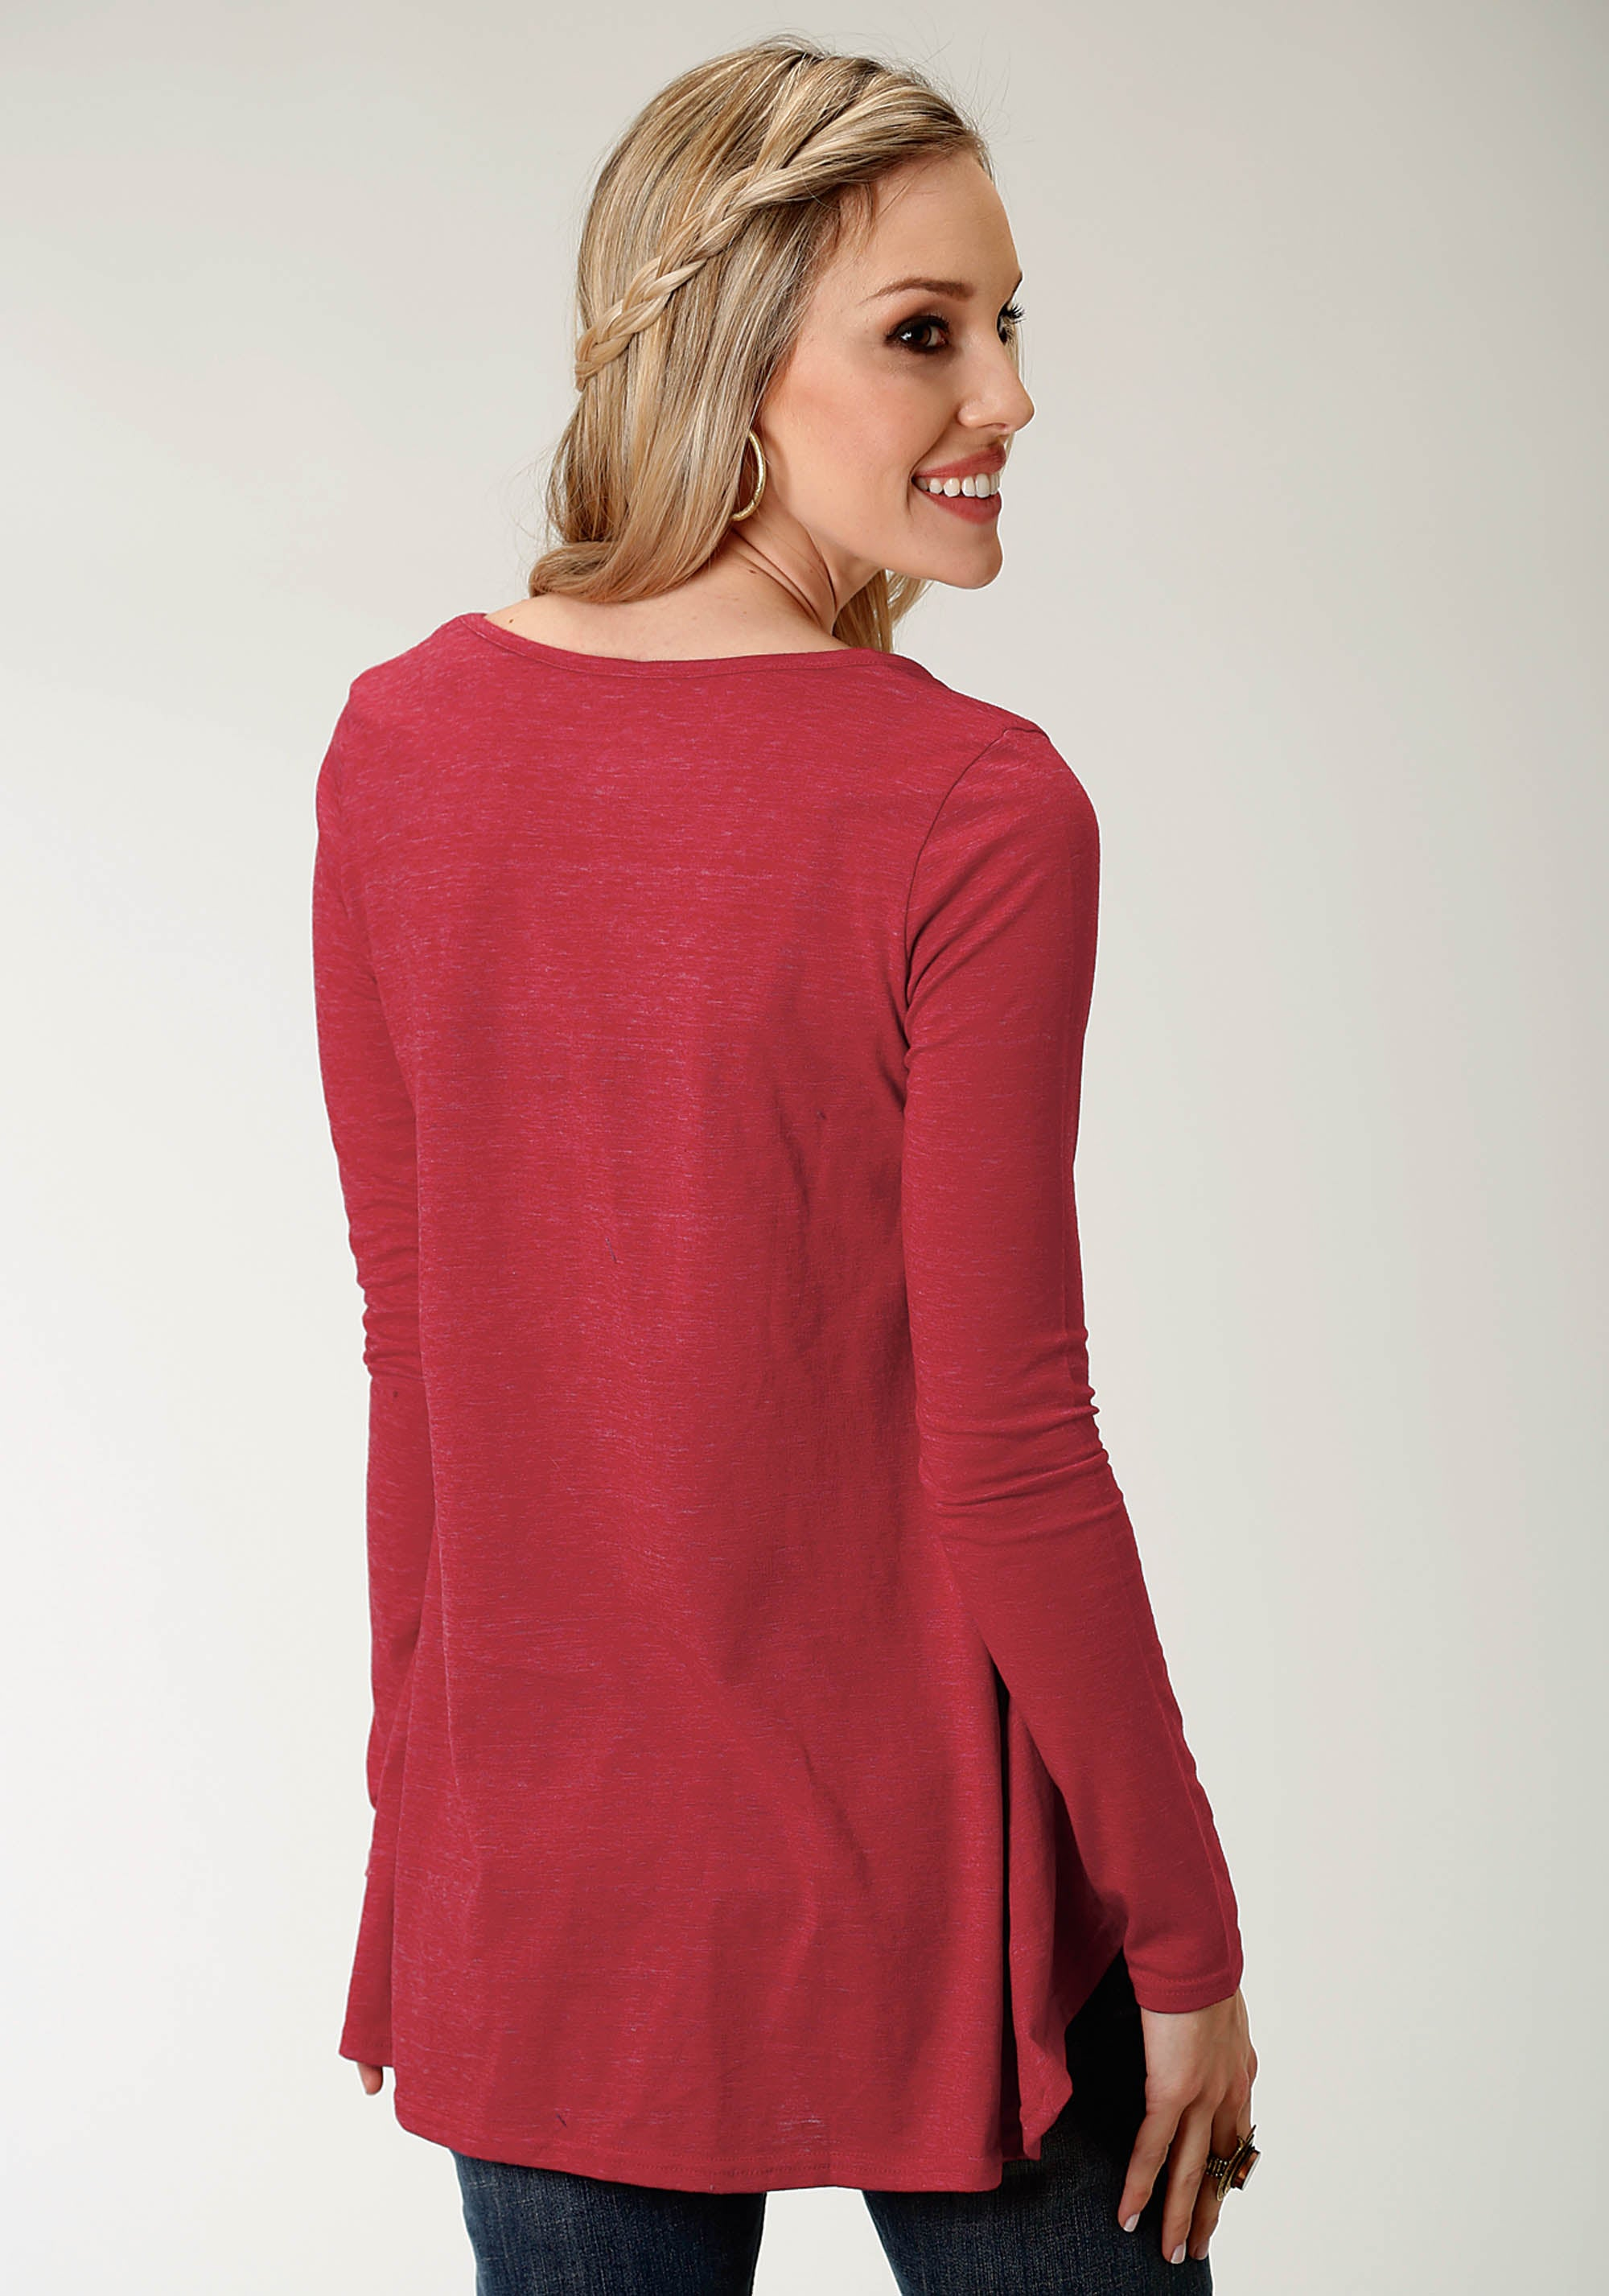 ROPER WOMENS RED 2321 T/C HEATHER JERSEY V NECK TOP STUDIO WEST- A ROSE IS A ROSE LONG SLEEVE